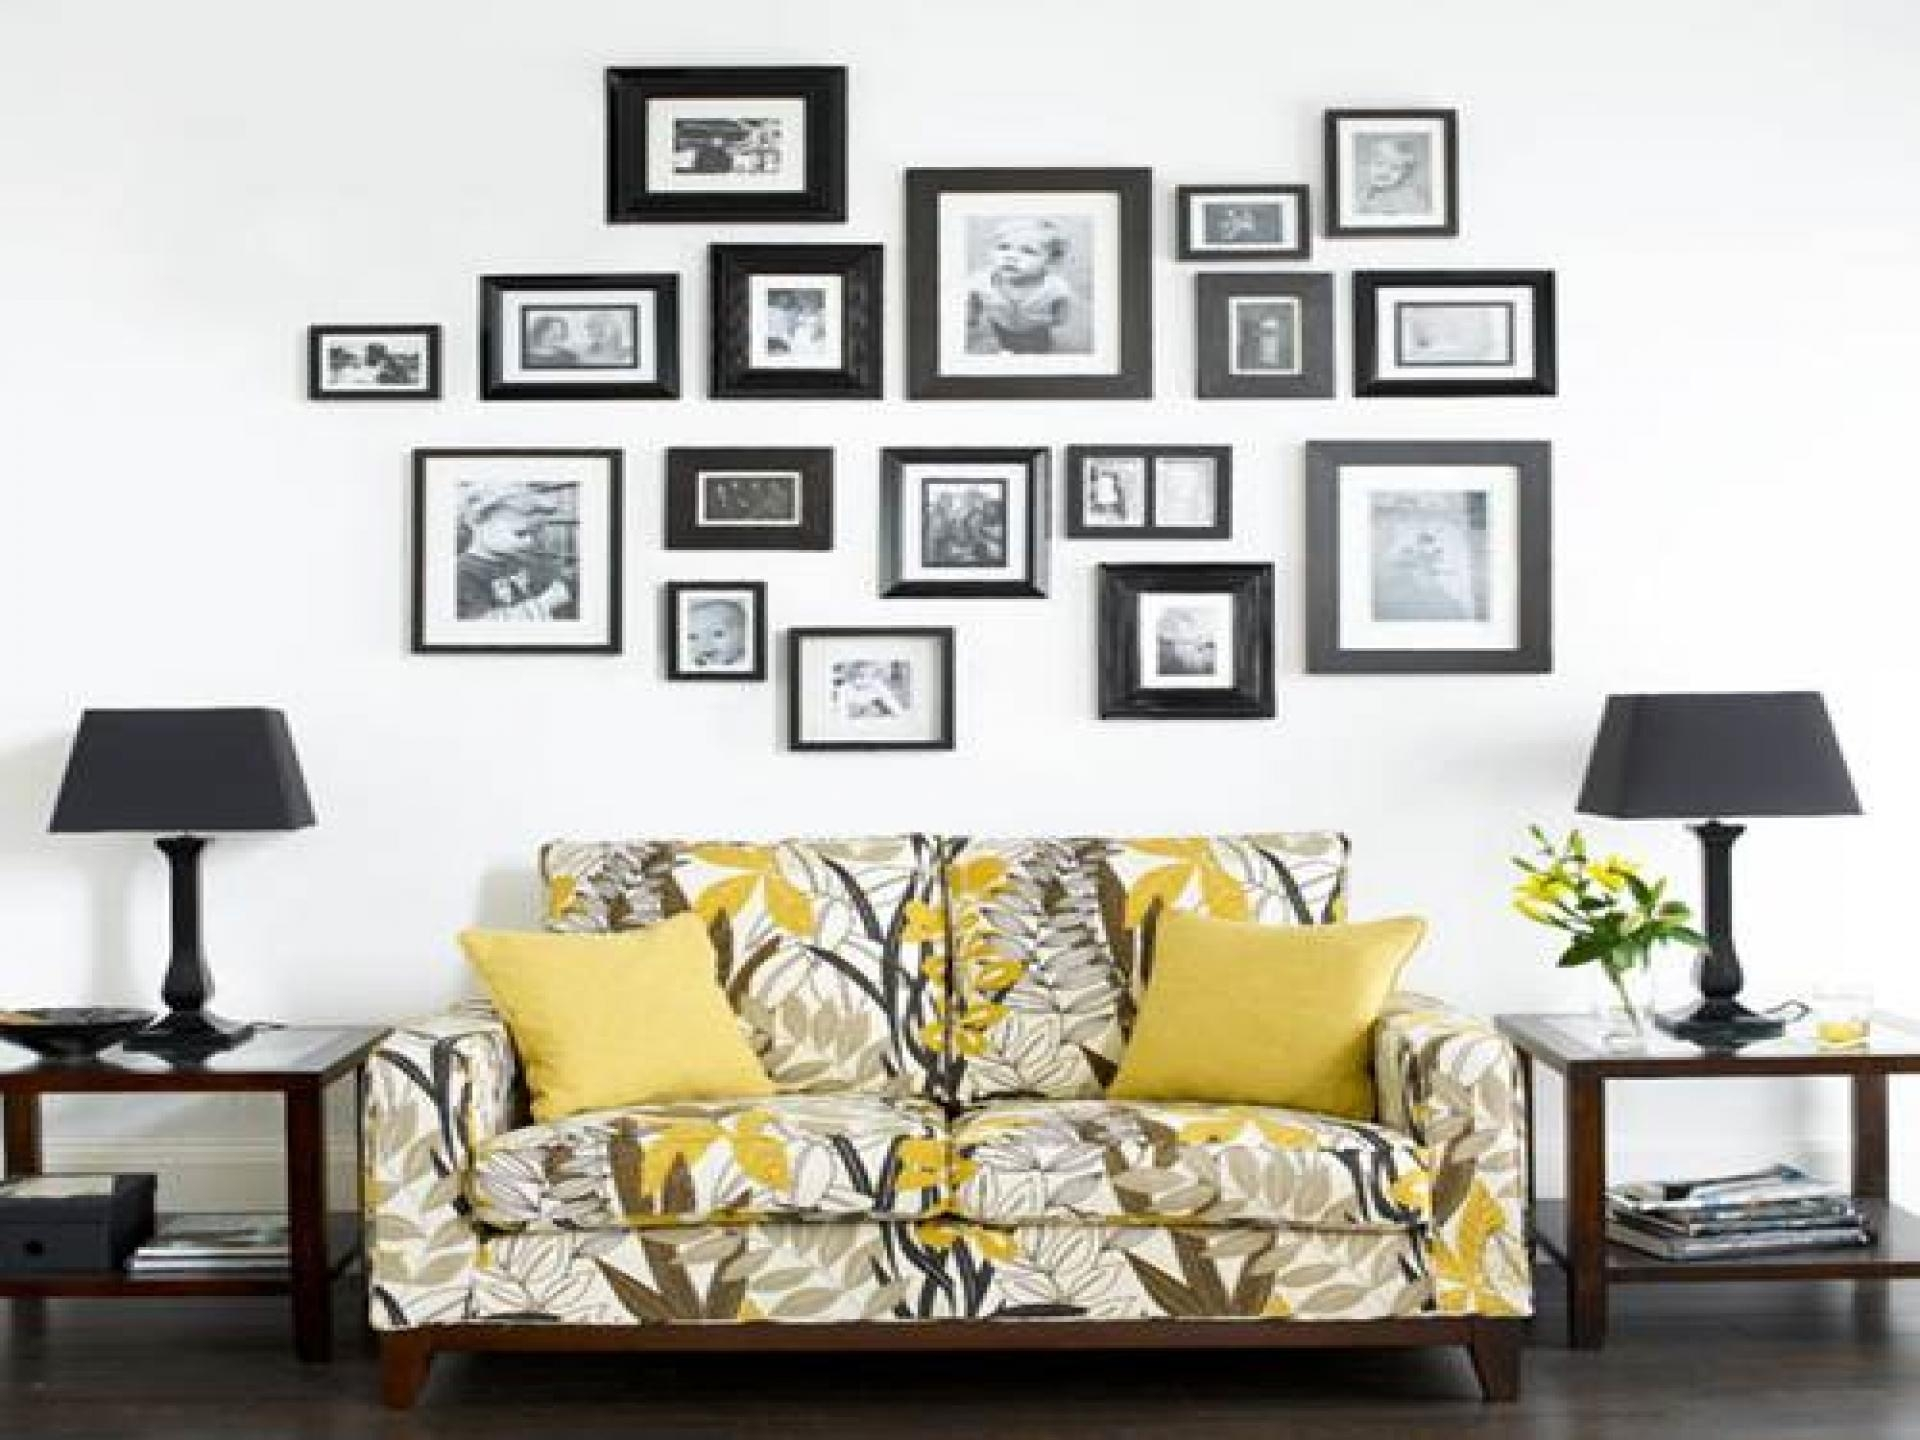 Framed Art For Living Room – Living Room Design Inspirations Pertaining To Inexpensive Framed Wall Art (View 10 of 20)